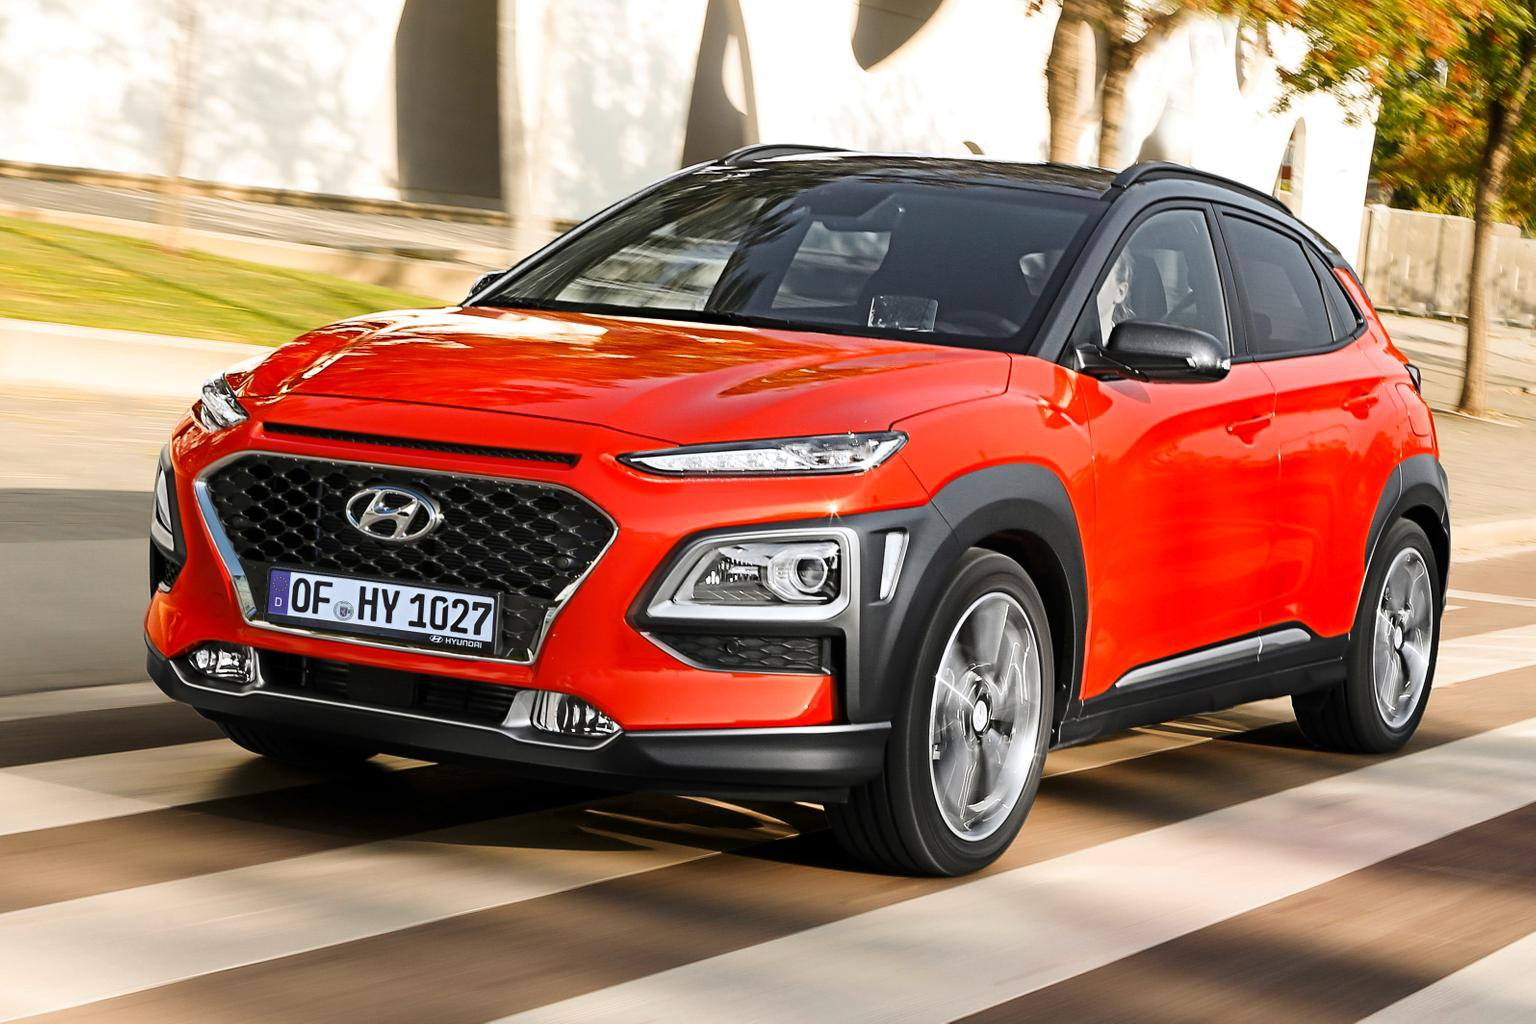 2018 Hyundai Kona 1.6 CRDi 115 review - price, specs and release date